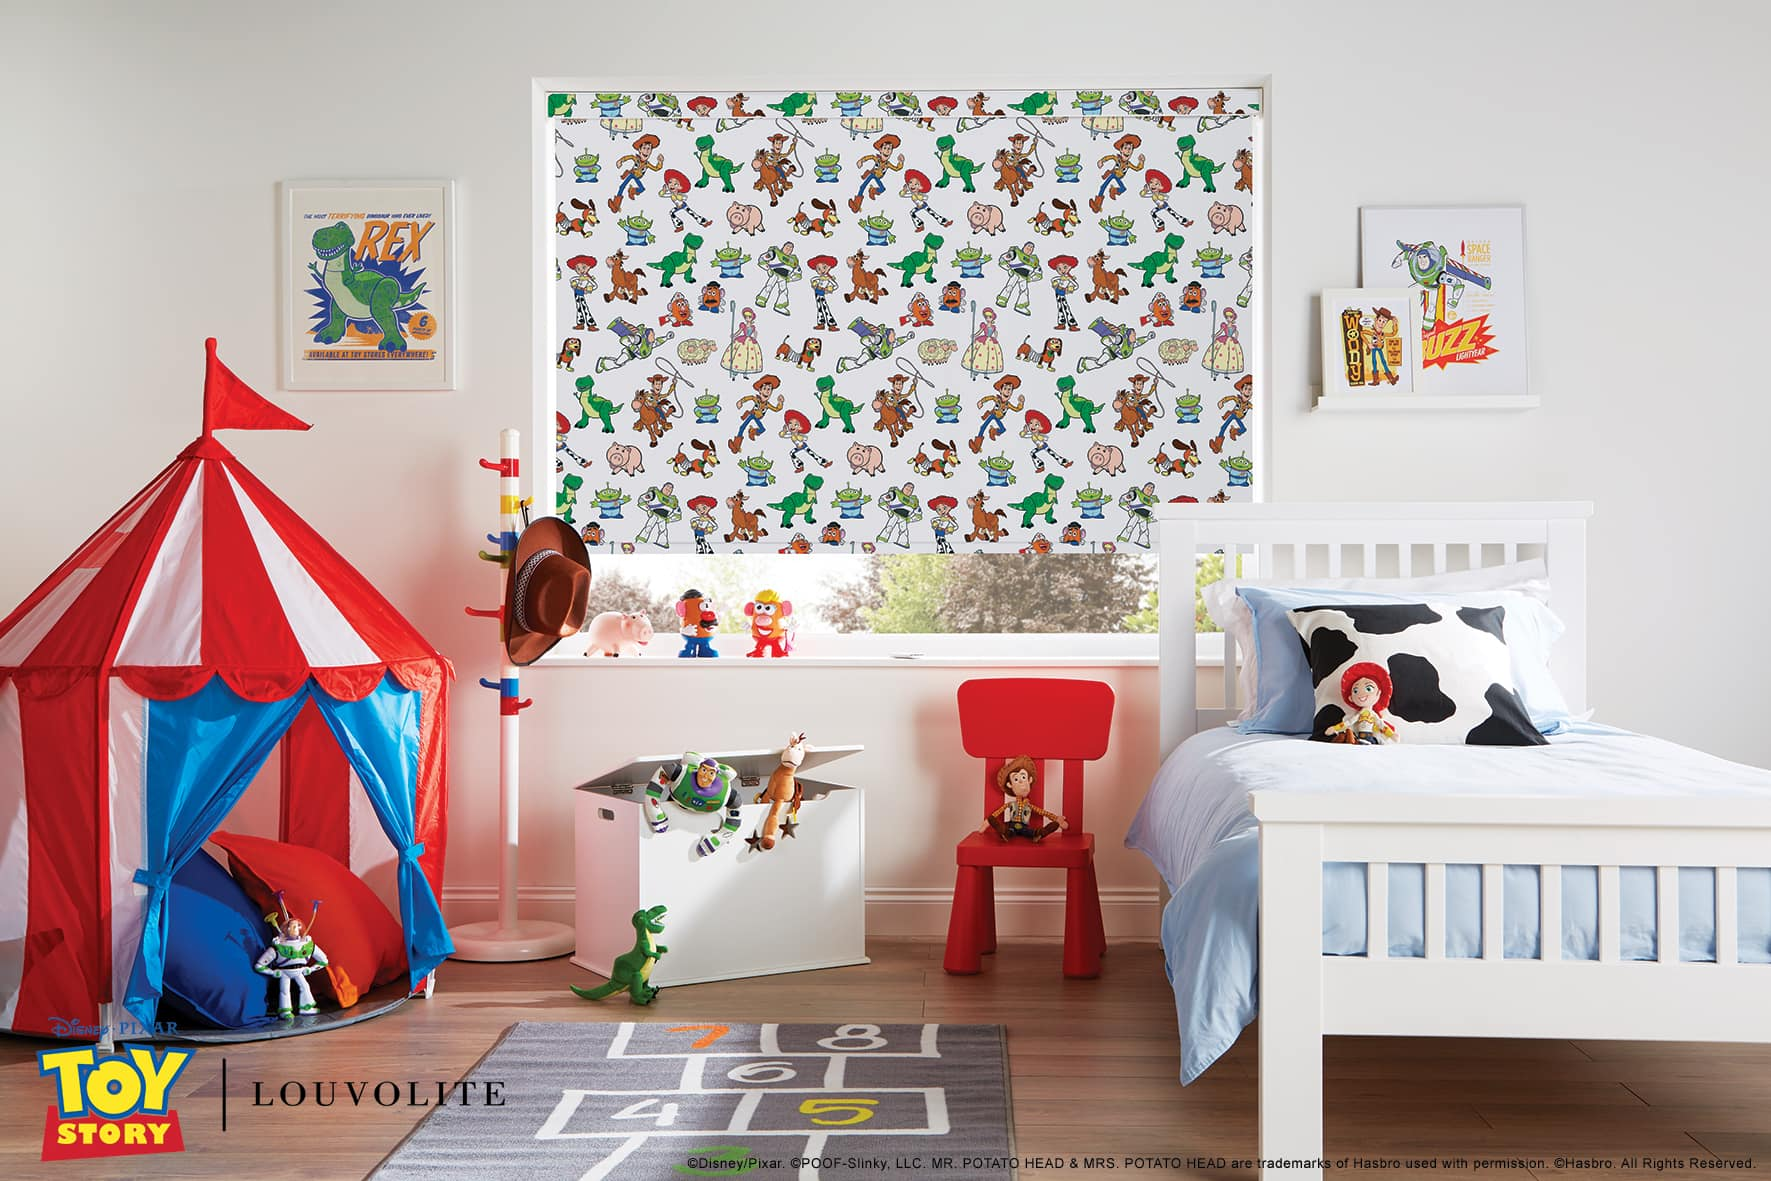 Disney Pixar Toy Story window blind in child's bedroom